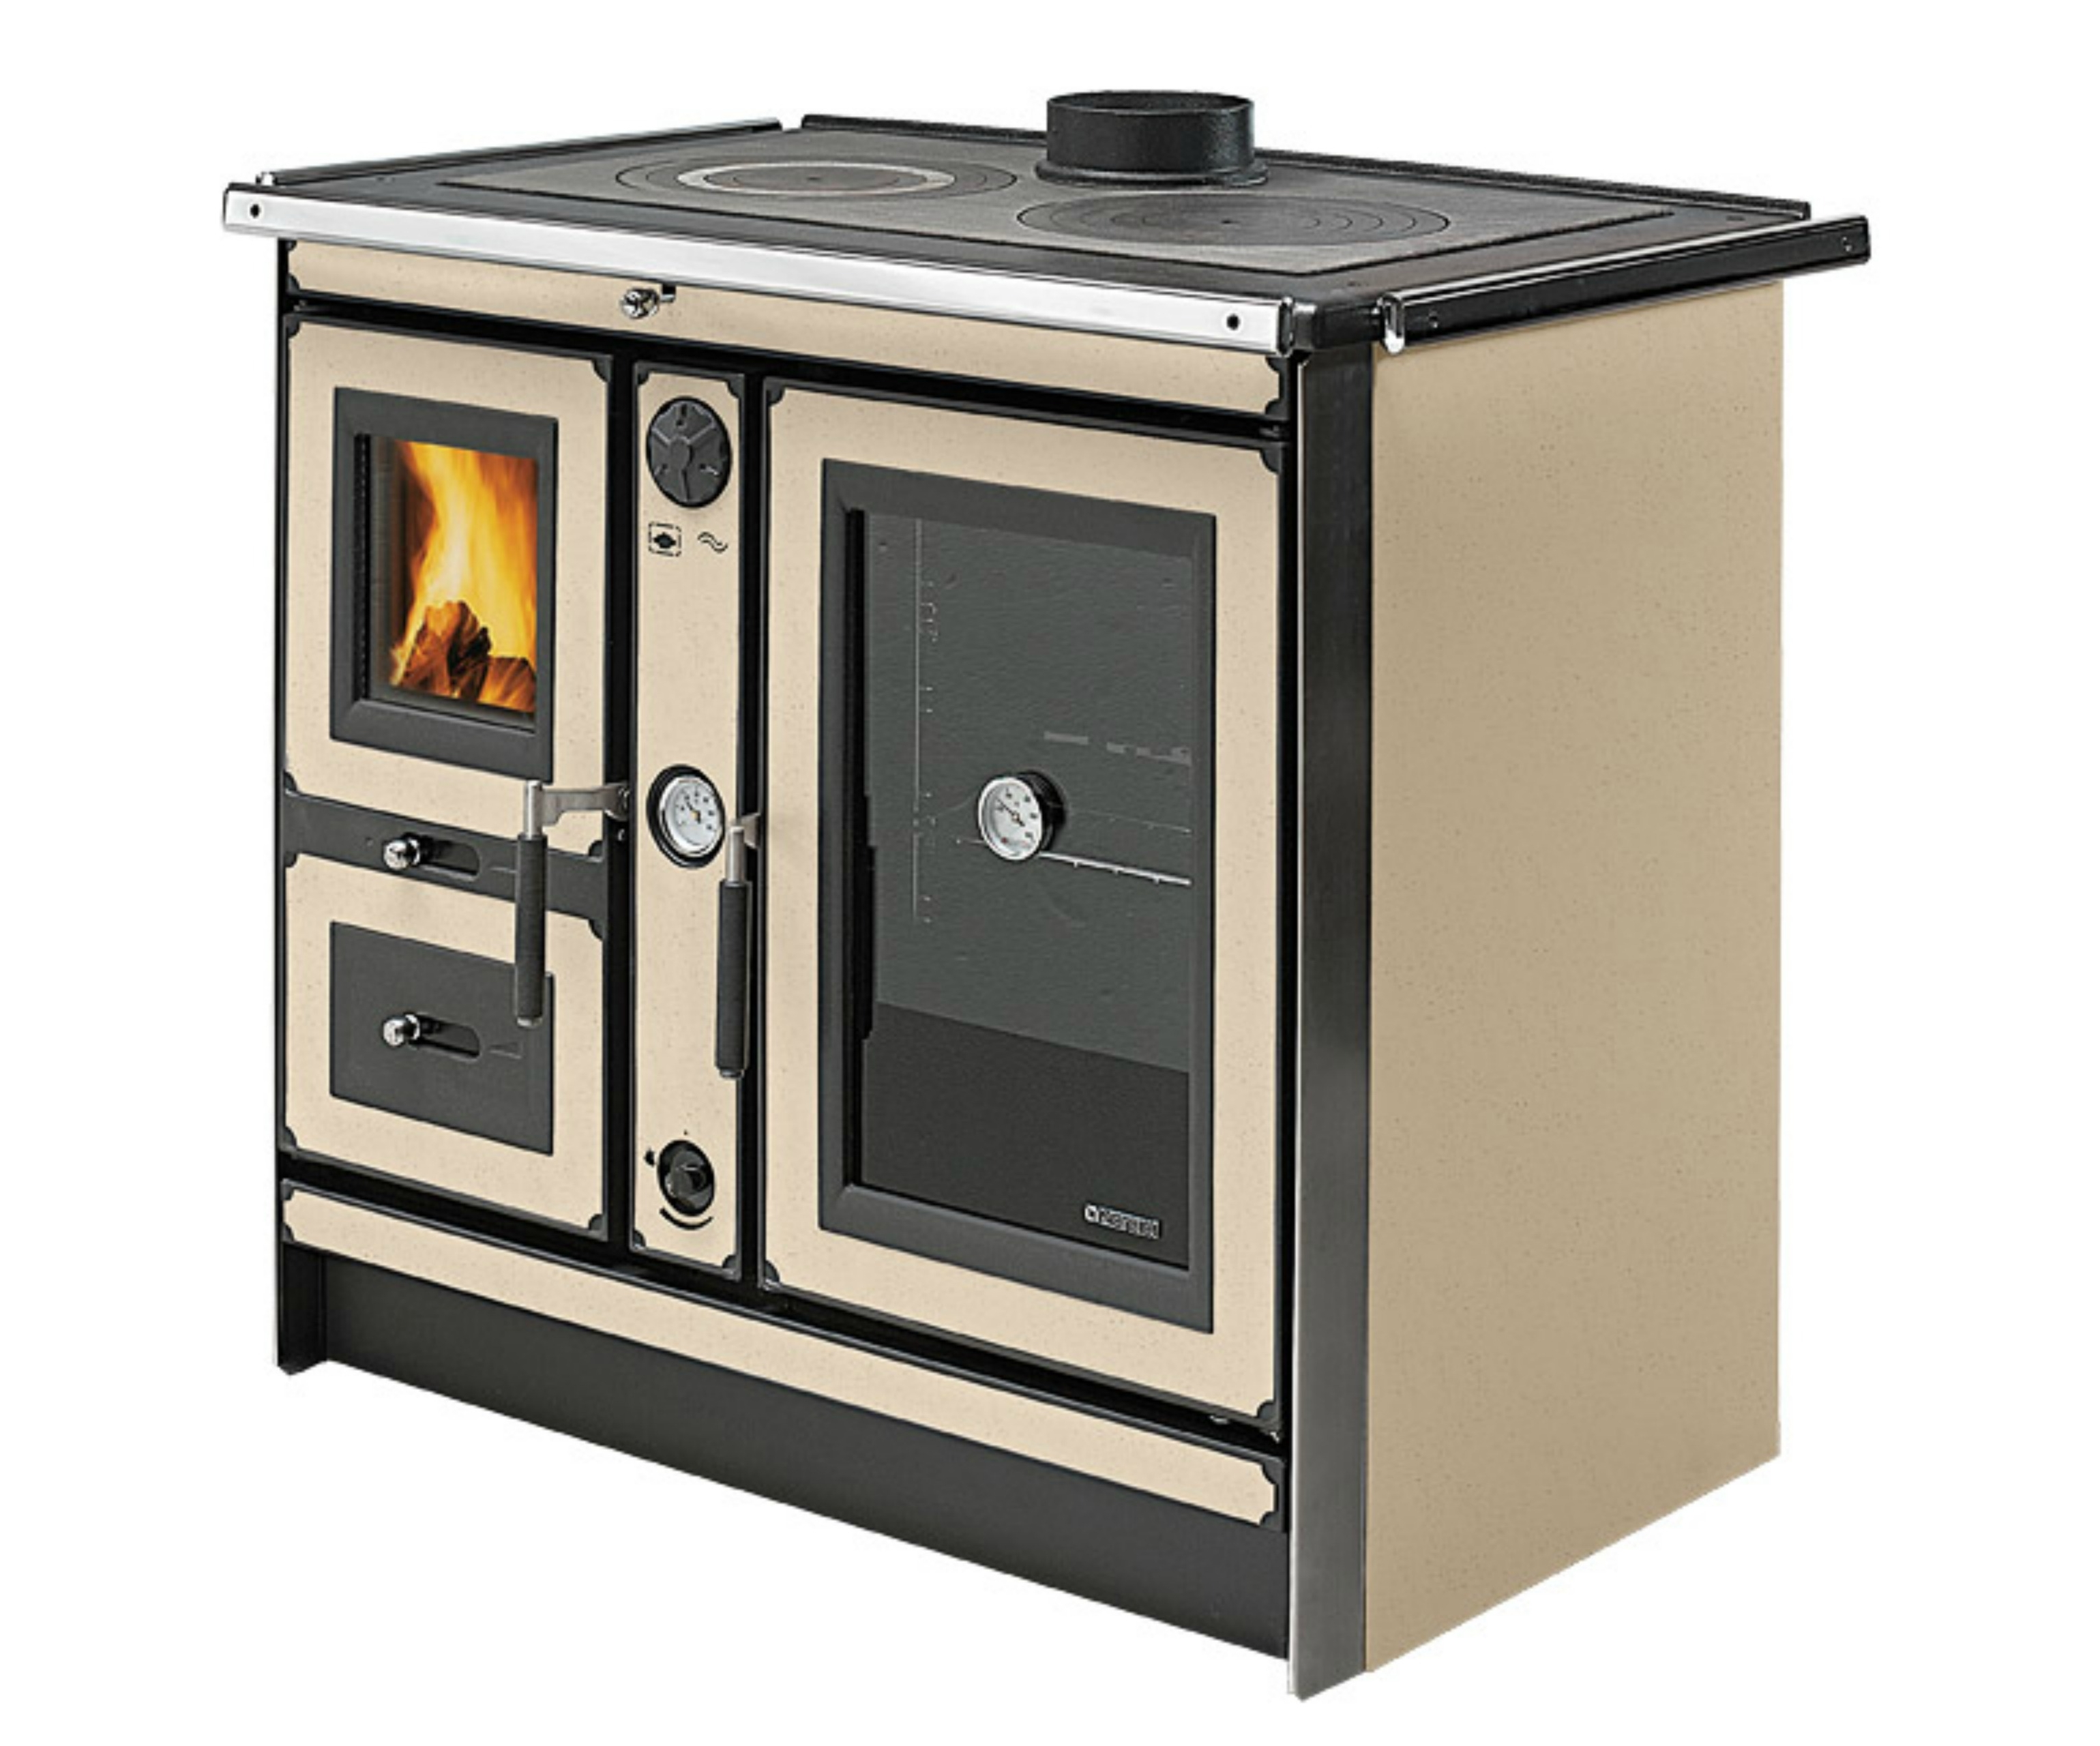 thermo italy boiler cooker freestanding stove at stovesellers. Black Bedroom Furniture Sets. Home Design Ideas